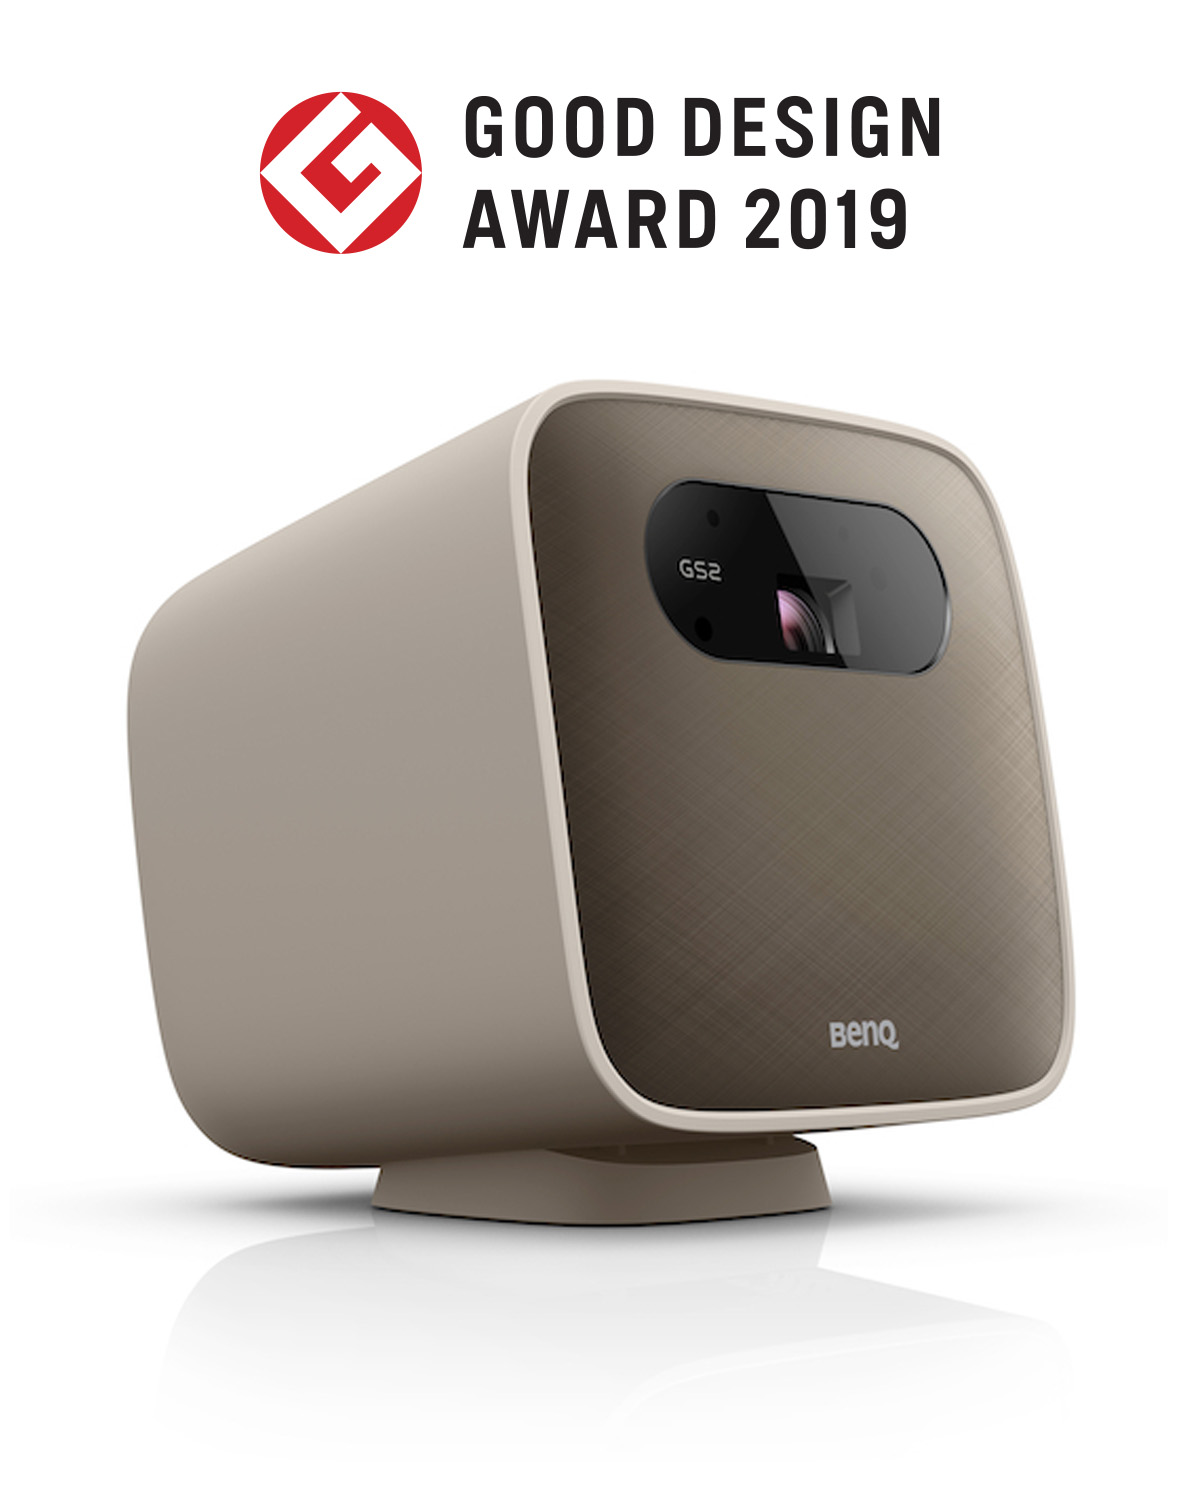 【日本】明基BenQ获颁三项2019年度G-Mark(GOOD DESIGN AWARD)大奖